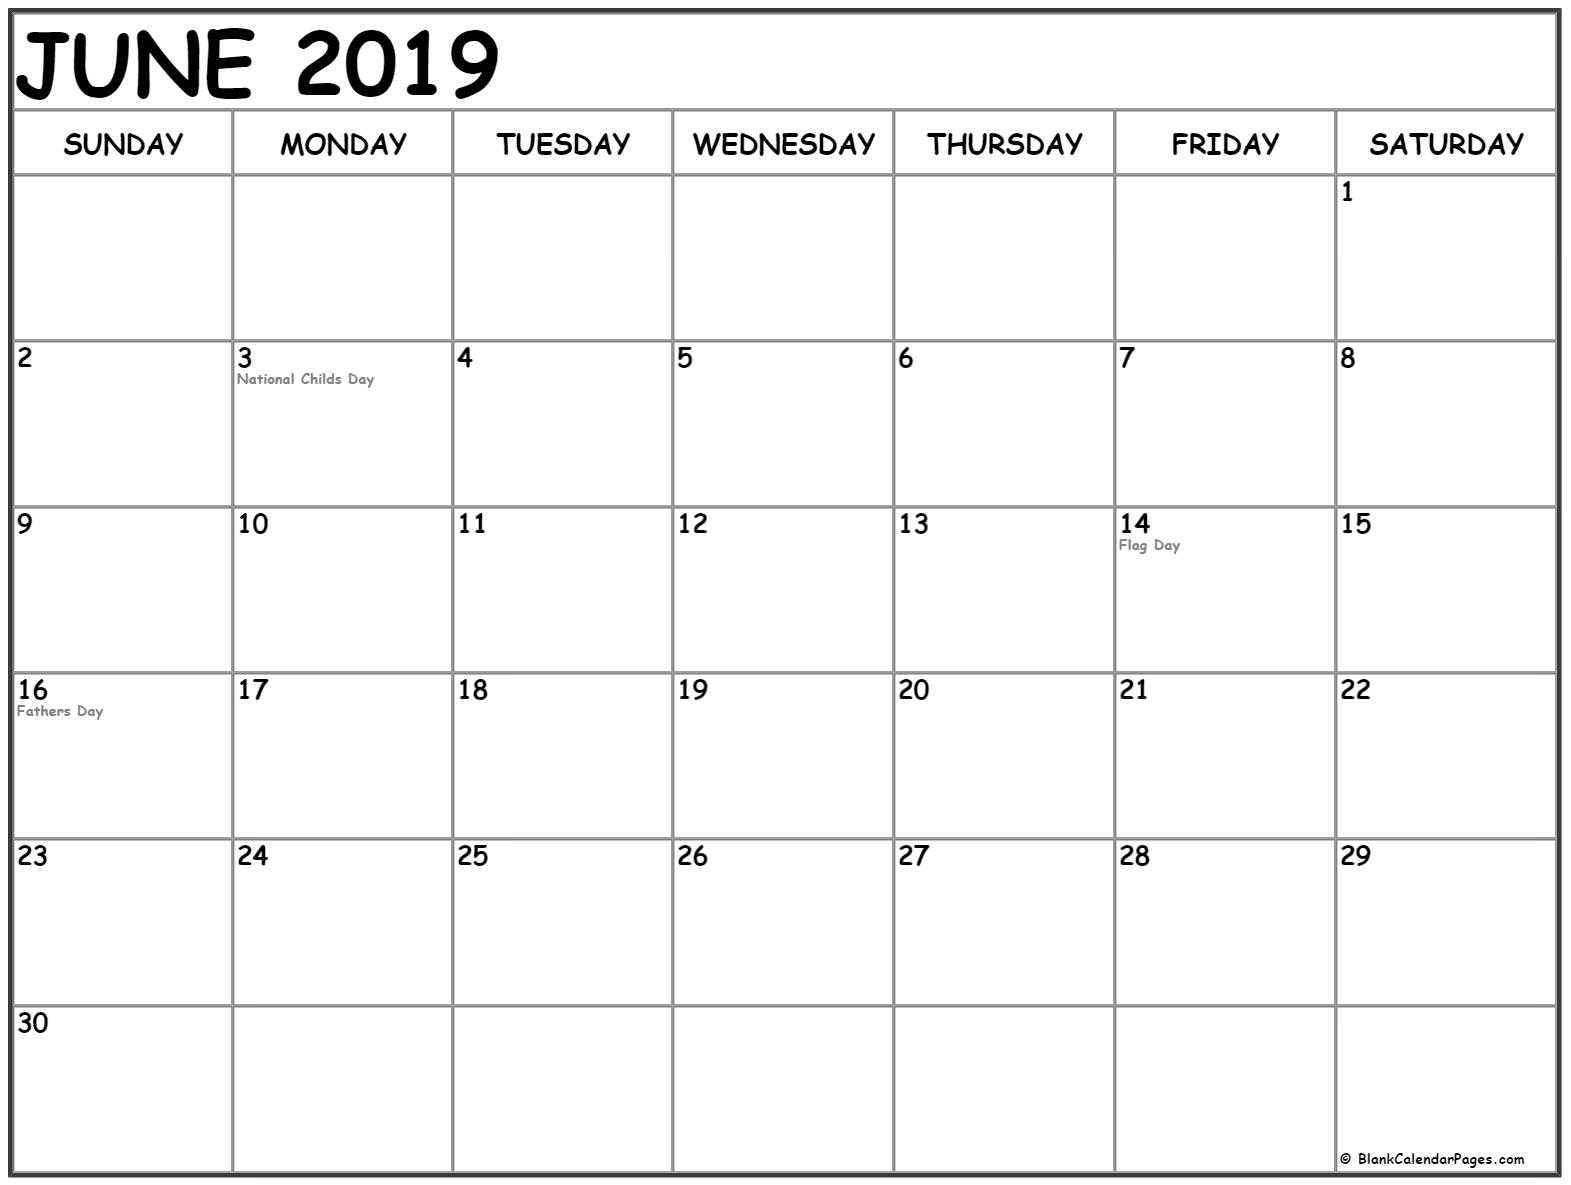 June 2019 Calendar with USA Holidays